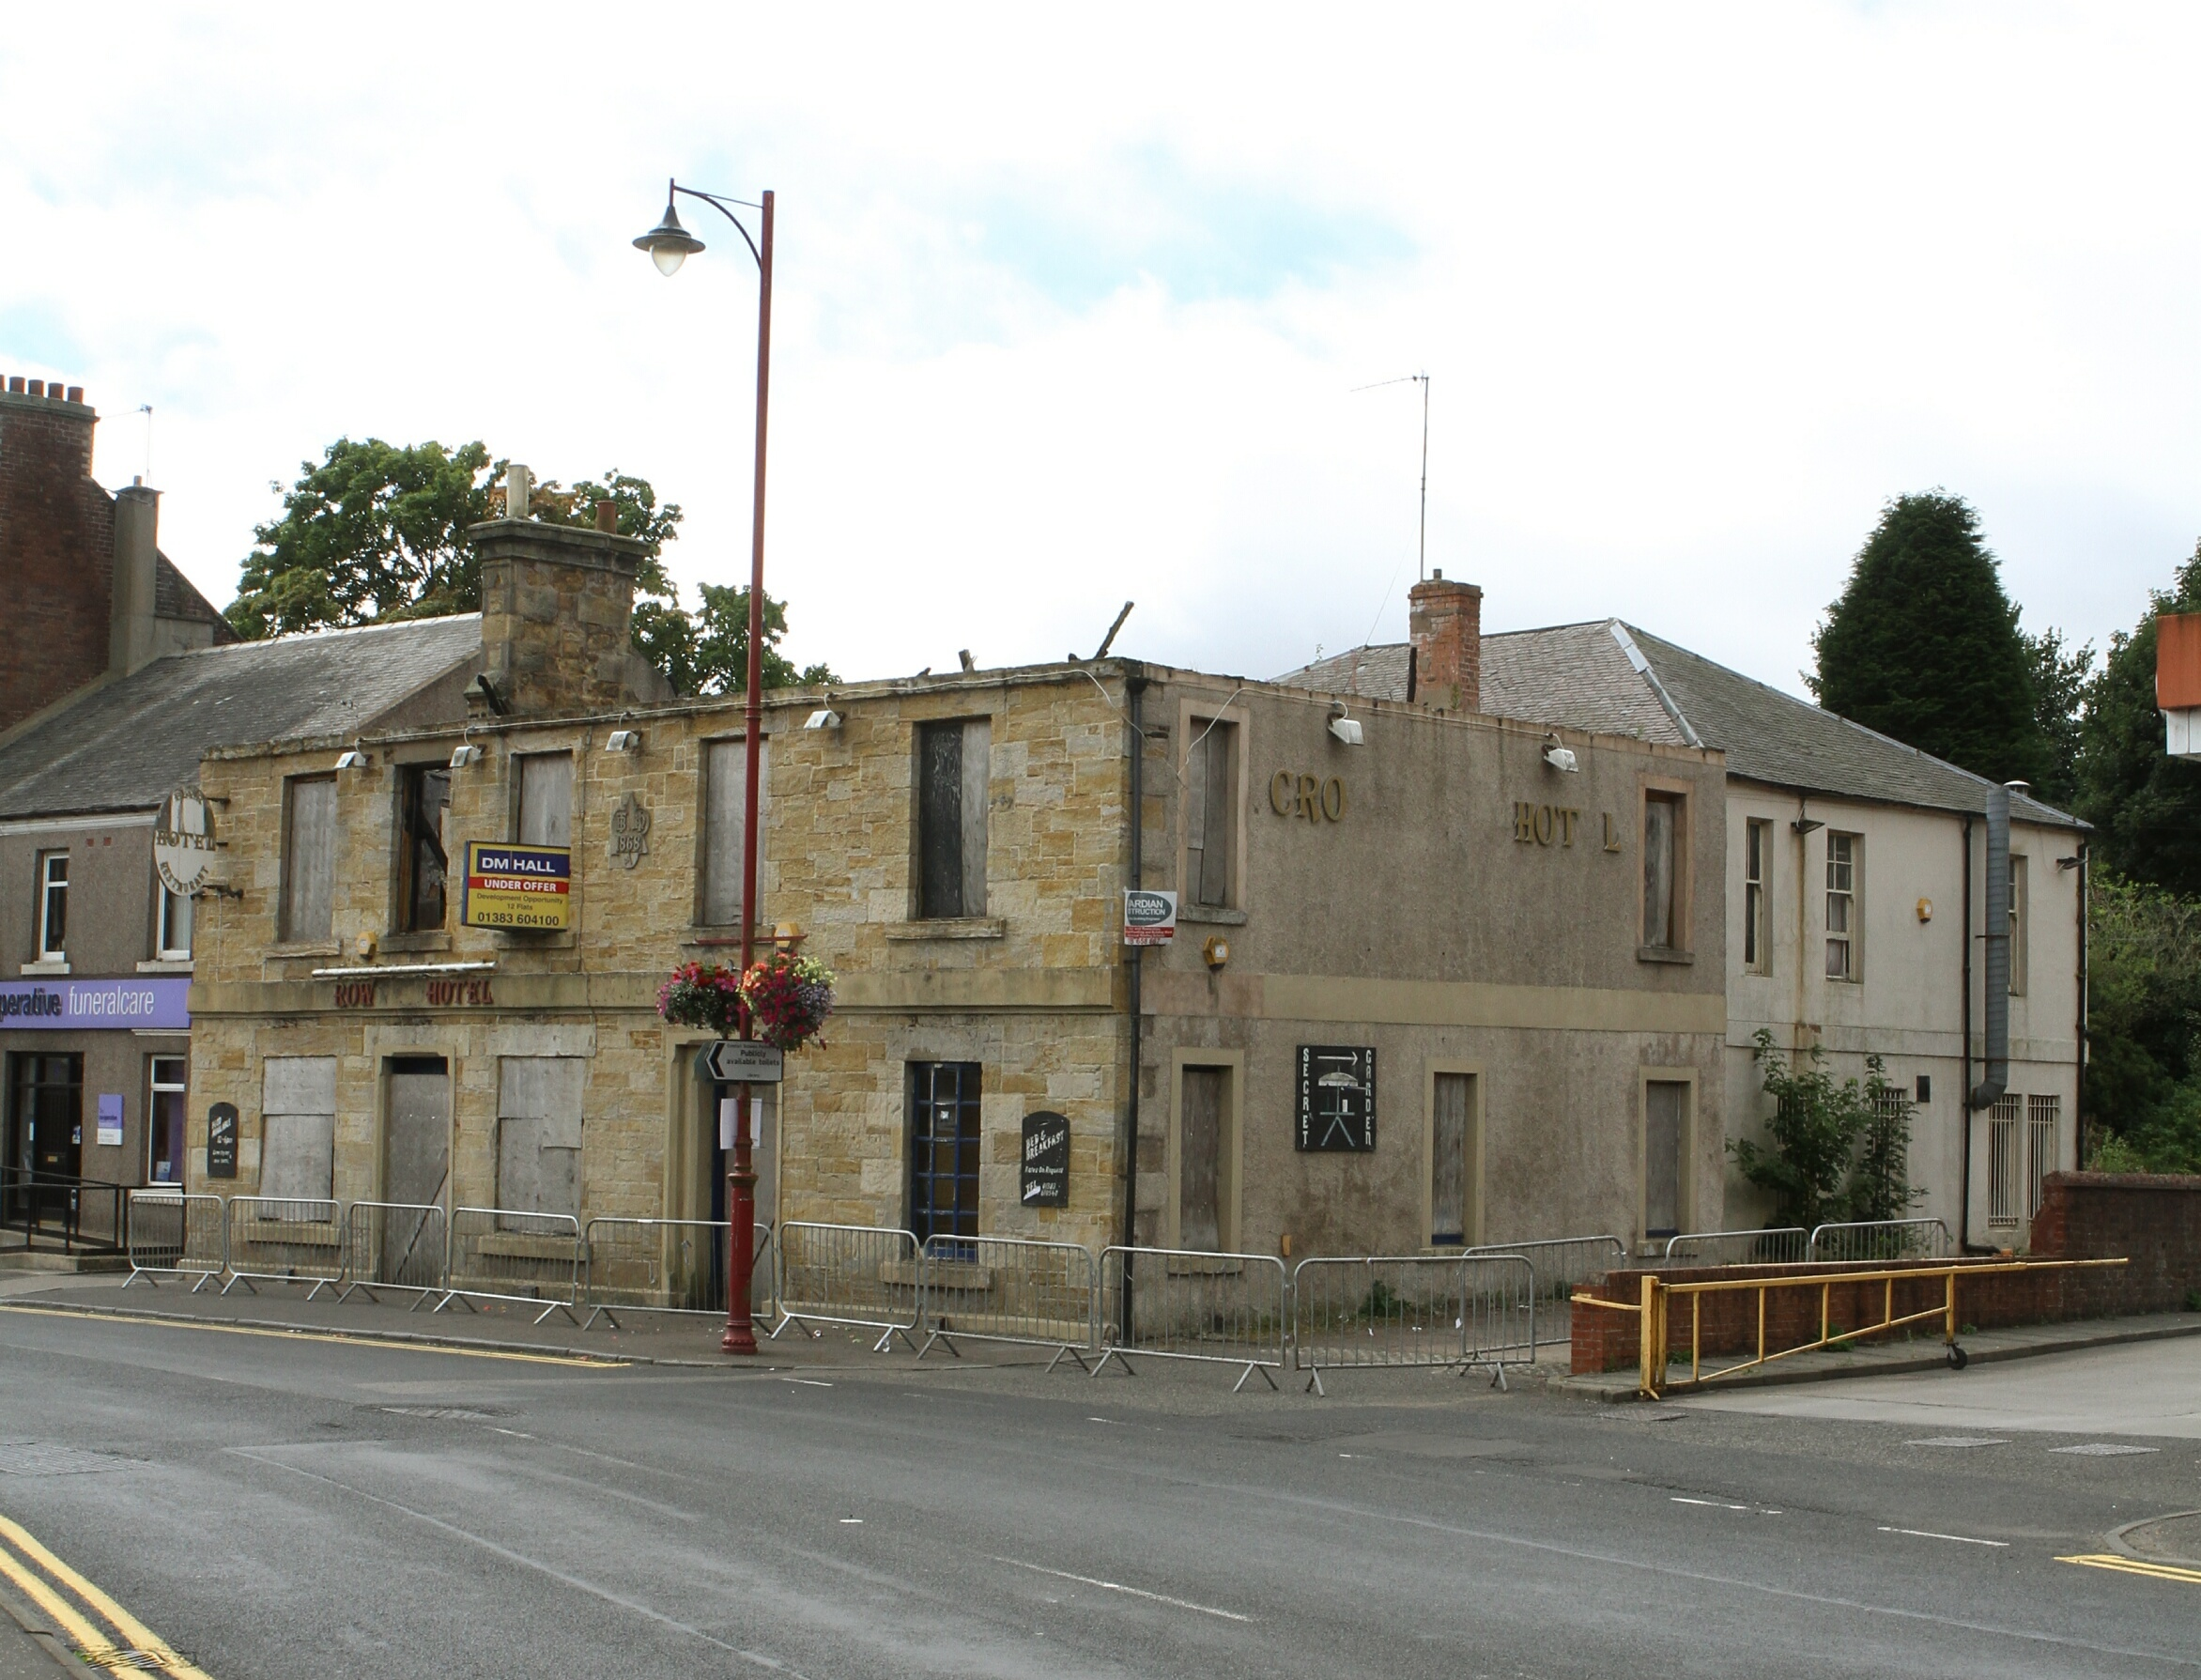 The dilapidated Crown Hotel